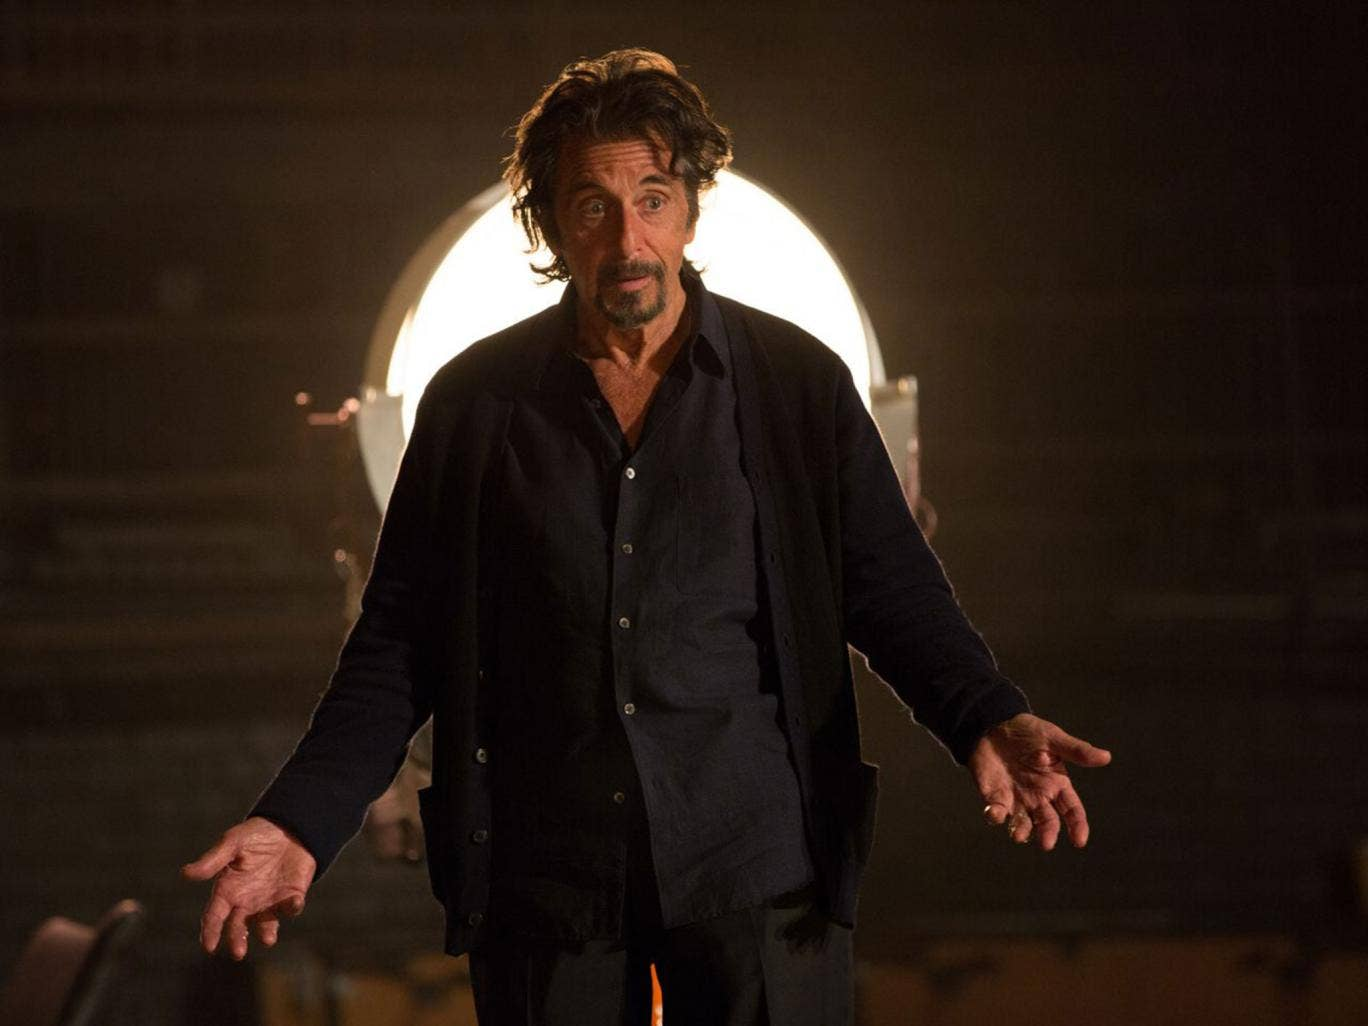 Al Pacino in 'The Humbling', as an ageing actor